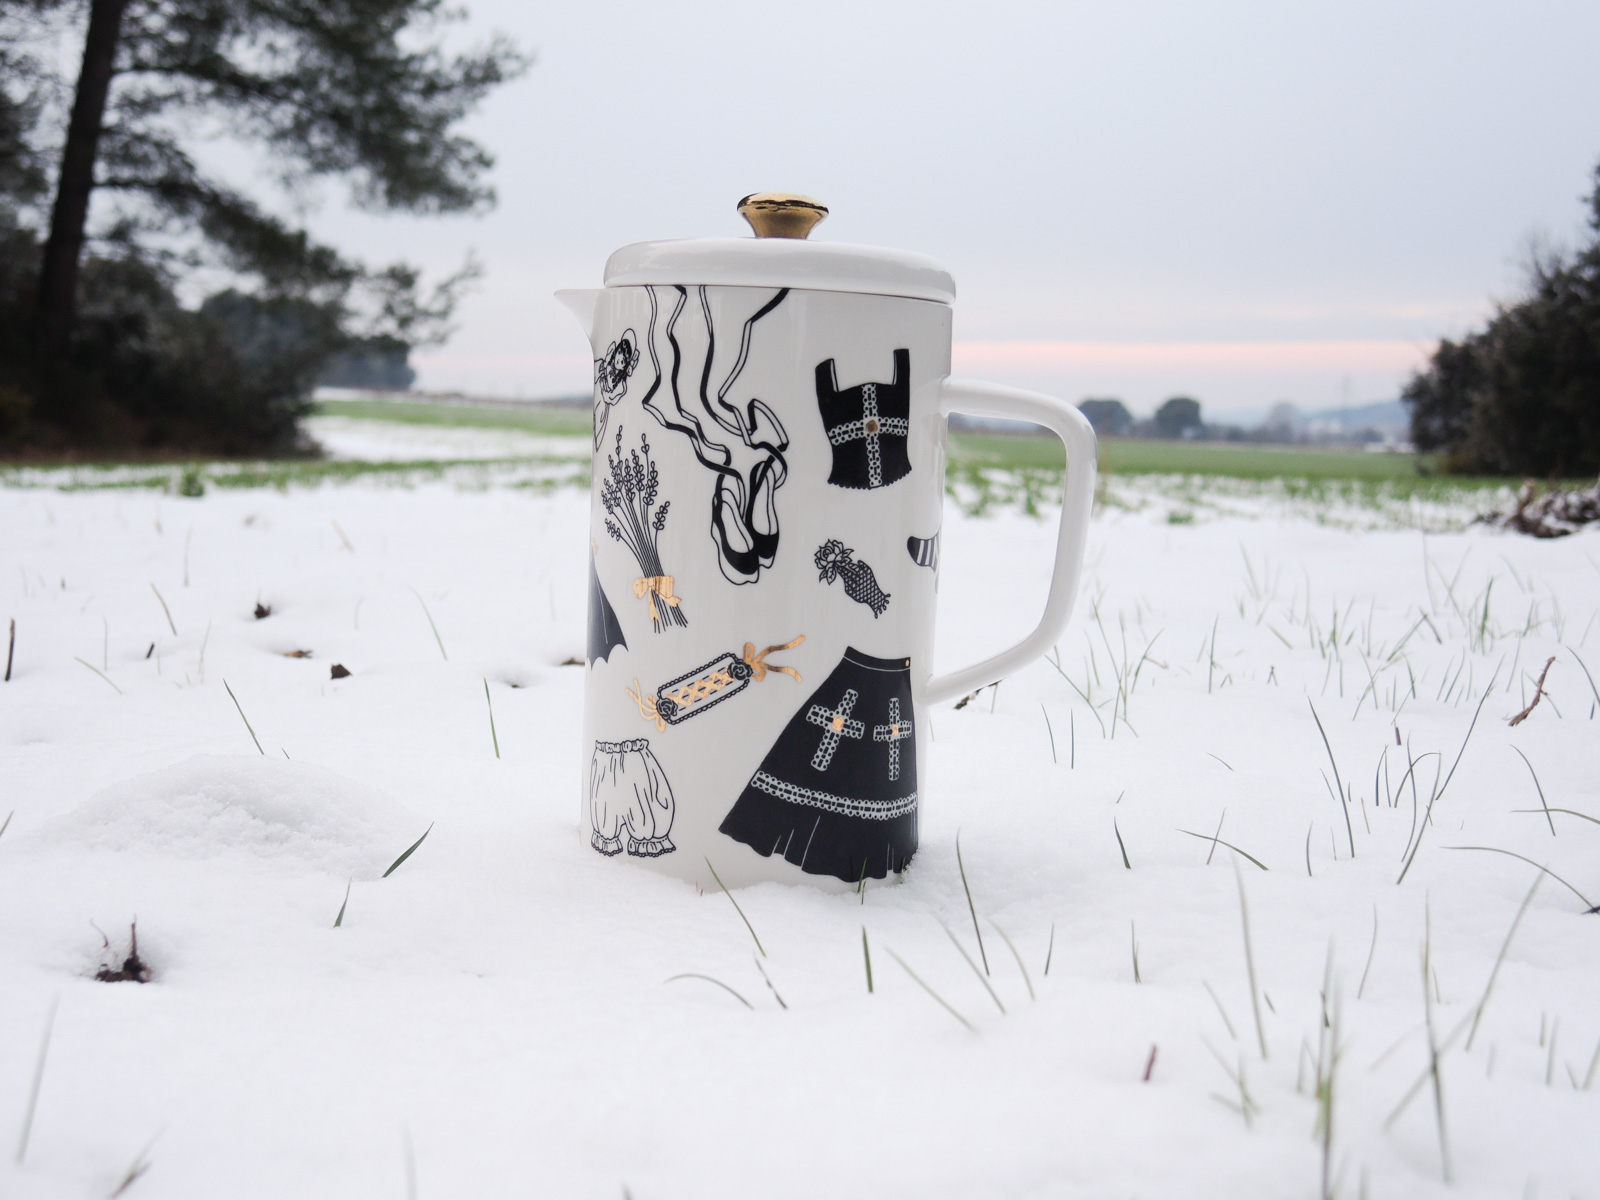 """Black coffee pot - 3rd one - from """"Oldschool Lolita"""", a collection of painted porcelains by messalyn, standing in the snow in a field at sunset"""